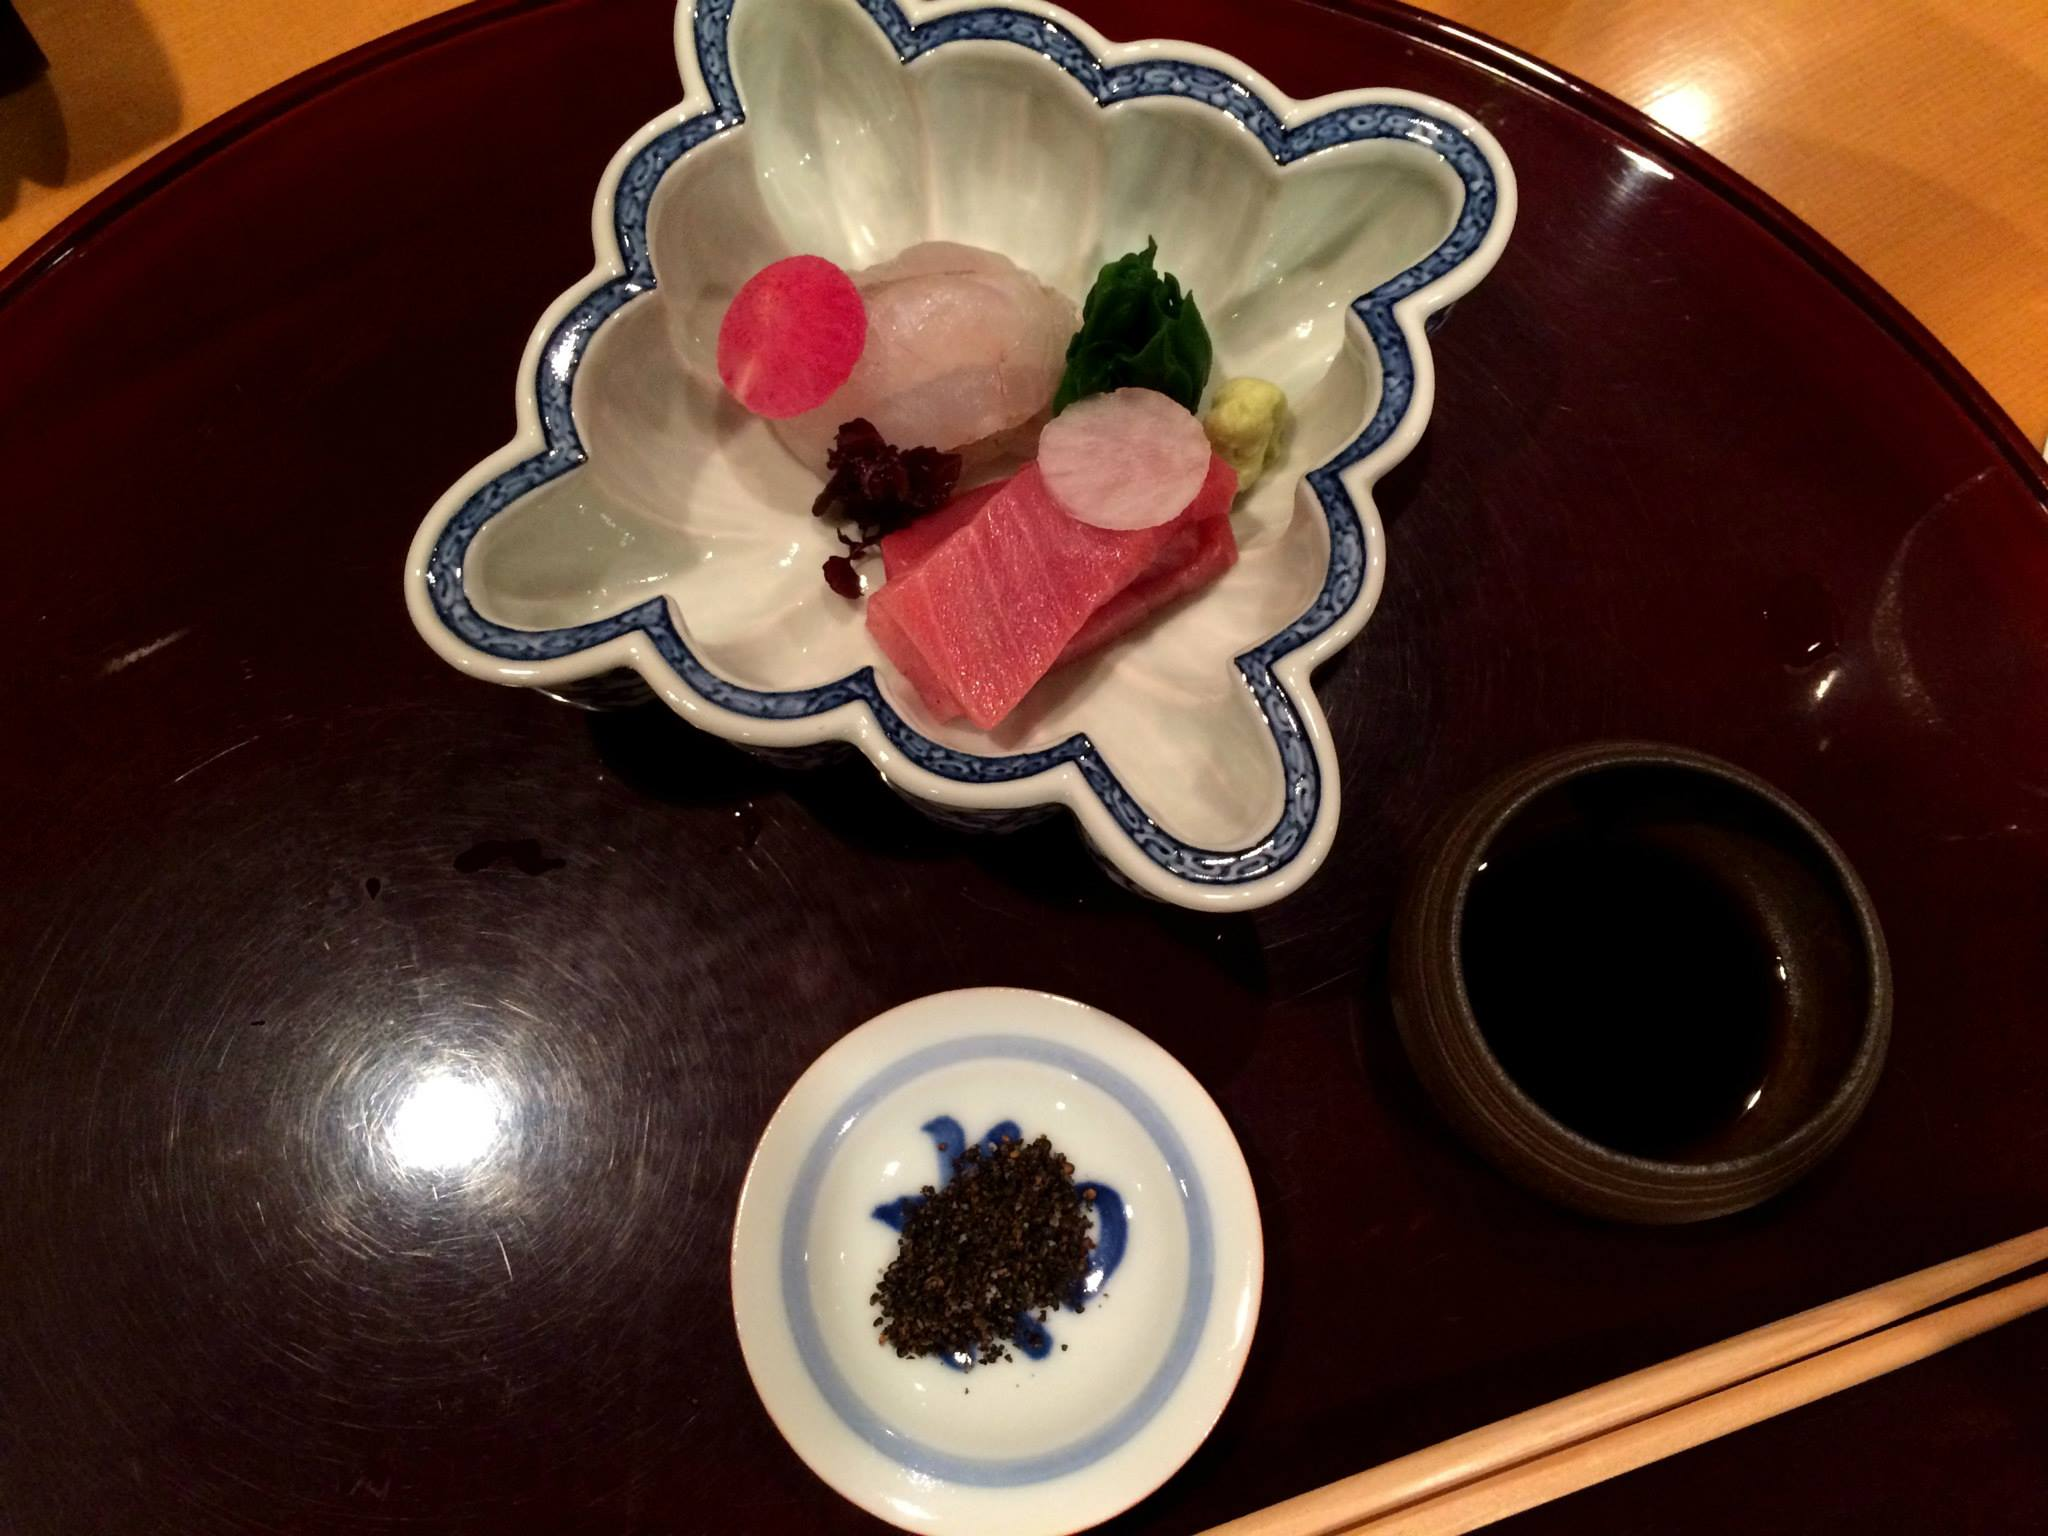 After the entree, more dishes kept coming. It was all very pretty and interesting and the flavours were very complex. I've actually lost count of the number of courses, all wonderful in its own right. The average price per person is ¥13,650 (US$ 109 at 2 June 2015 rates.)